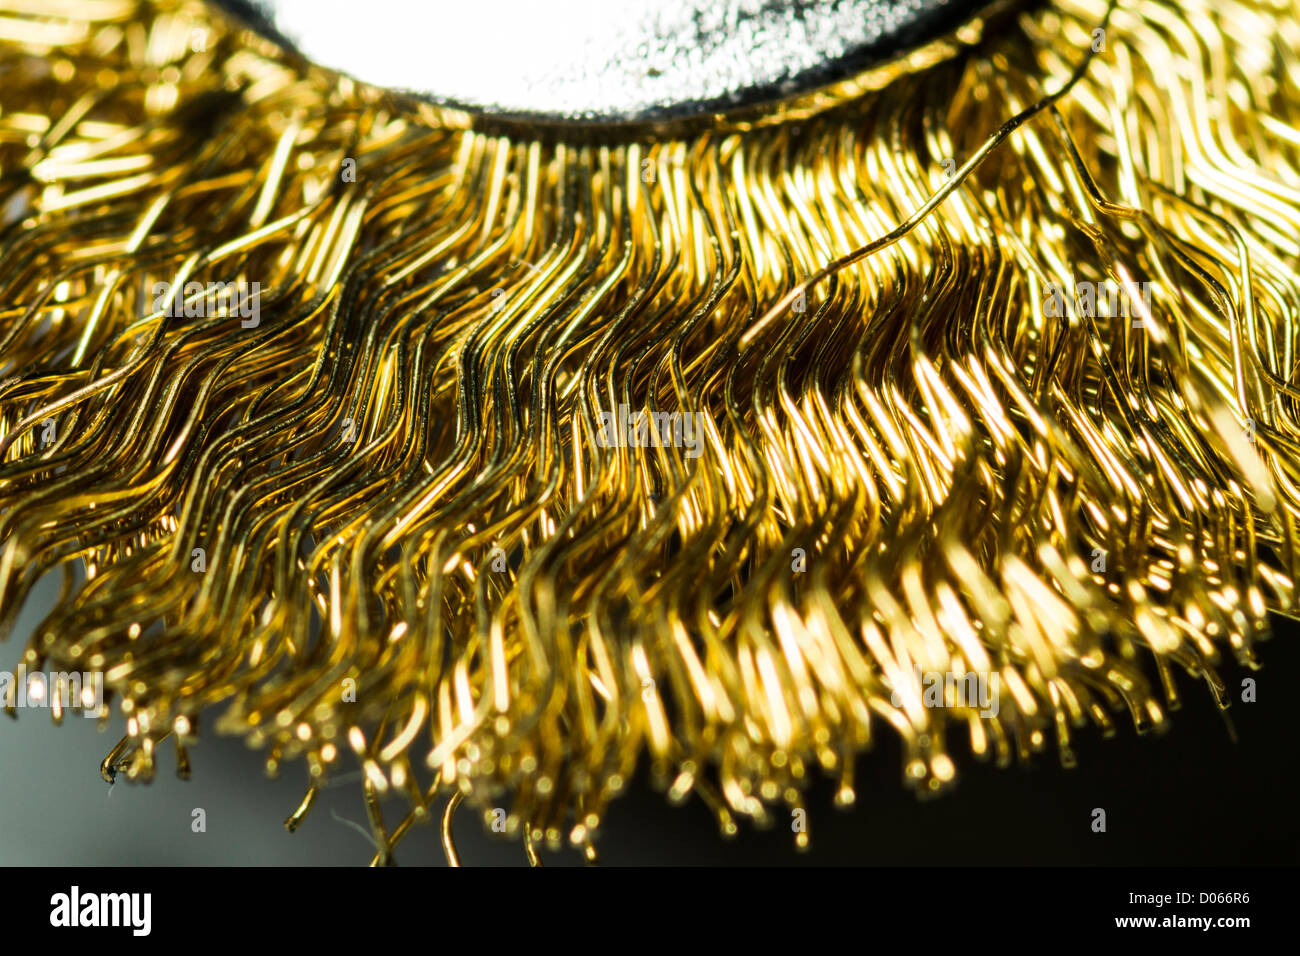 Wire Brush Tool Stockfotos & Wire Brush Tool Bilder - Alamy